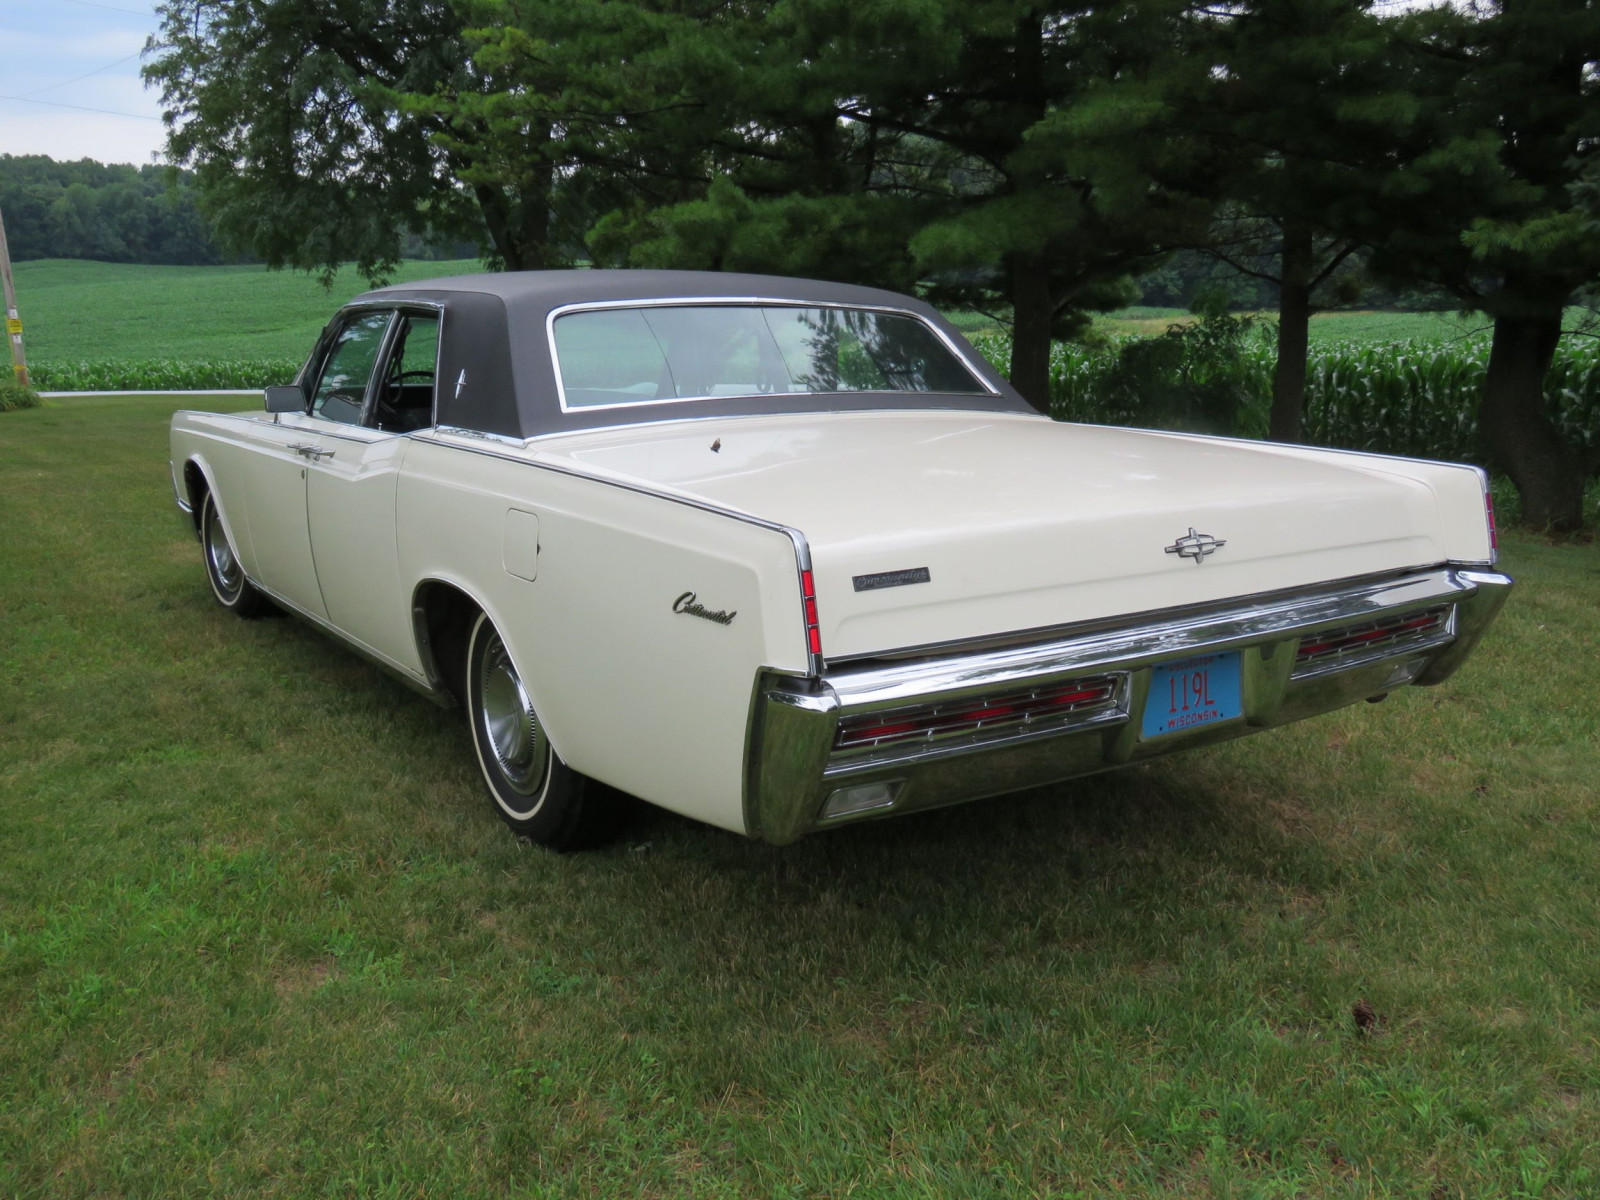 1967 Lincoln Continental 4dr HT Suicide Sedan - Image 7